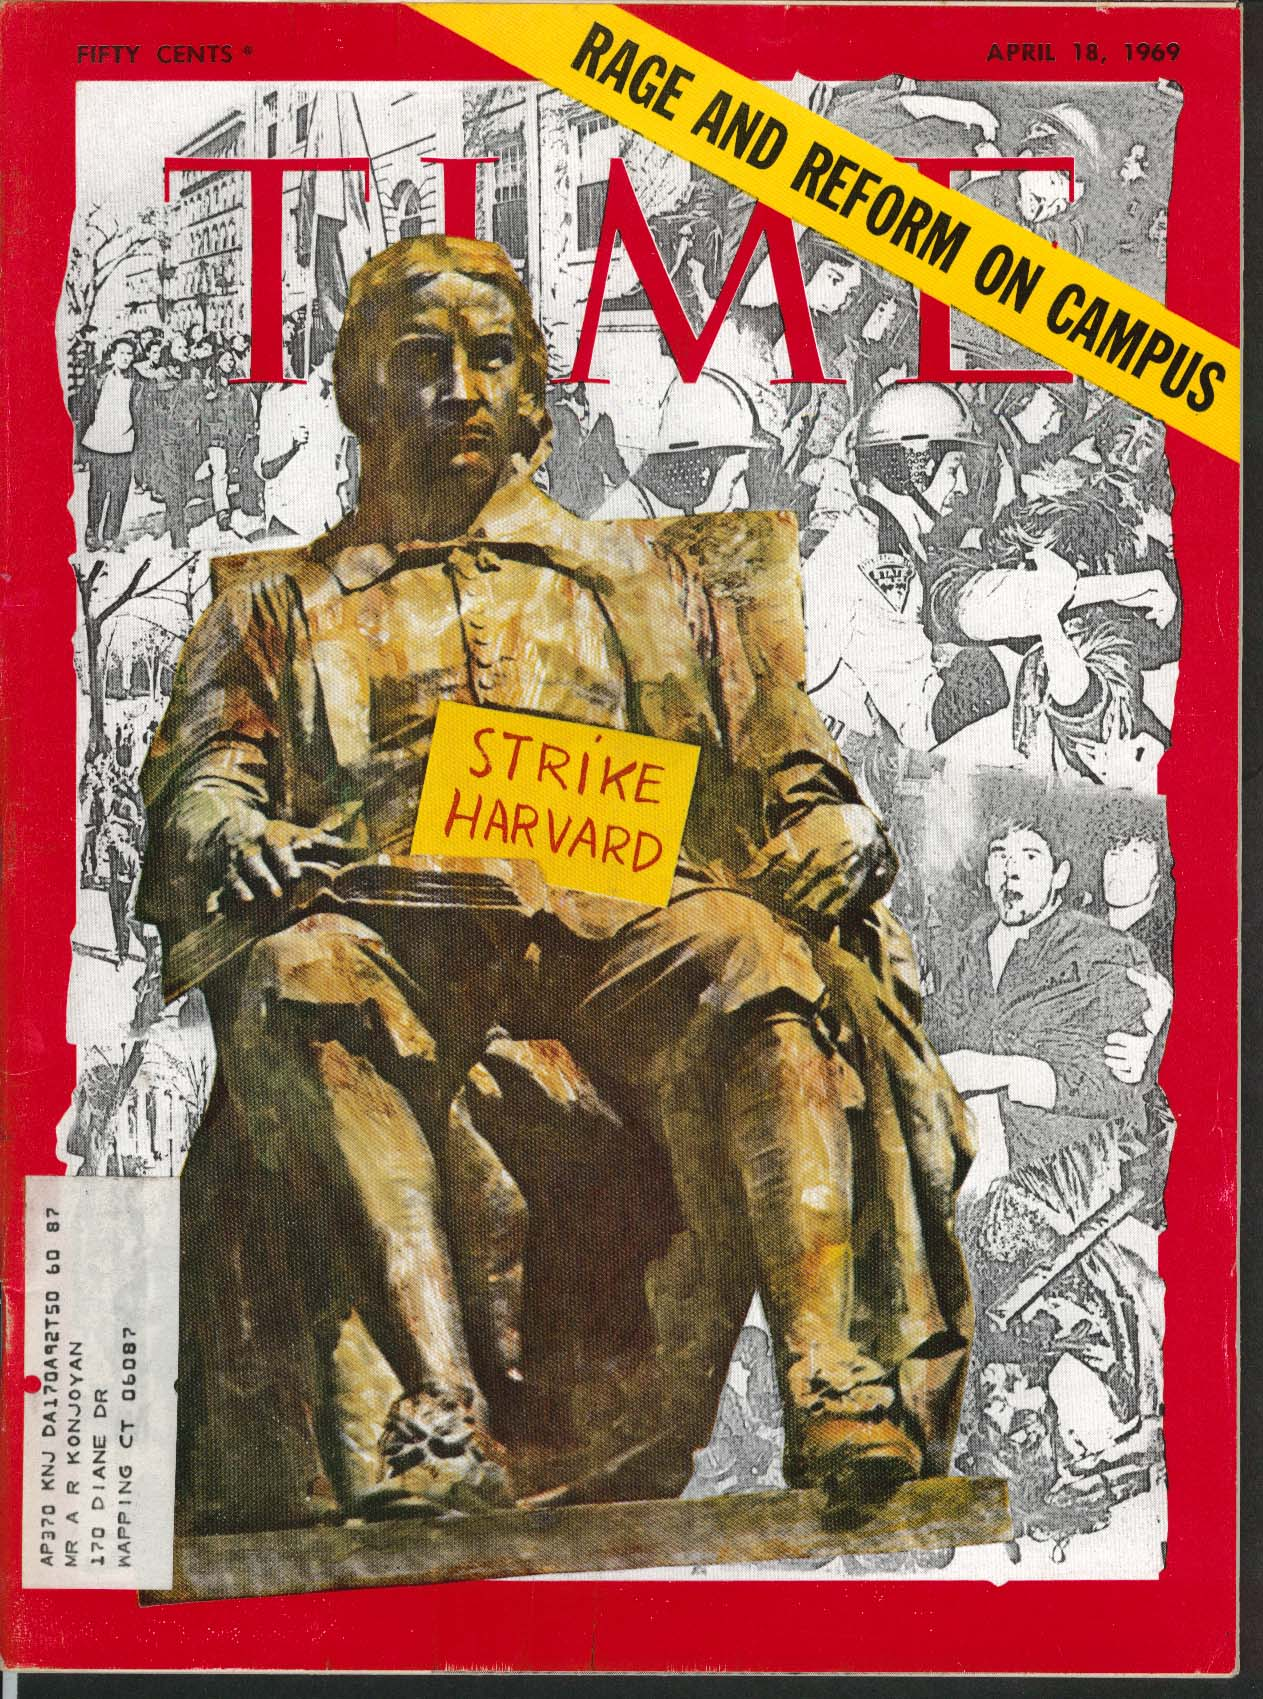 TIME Harvard Strike Russian Fisherman off US 4/18 1969